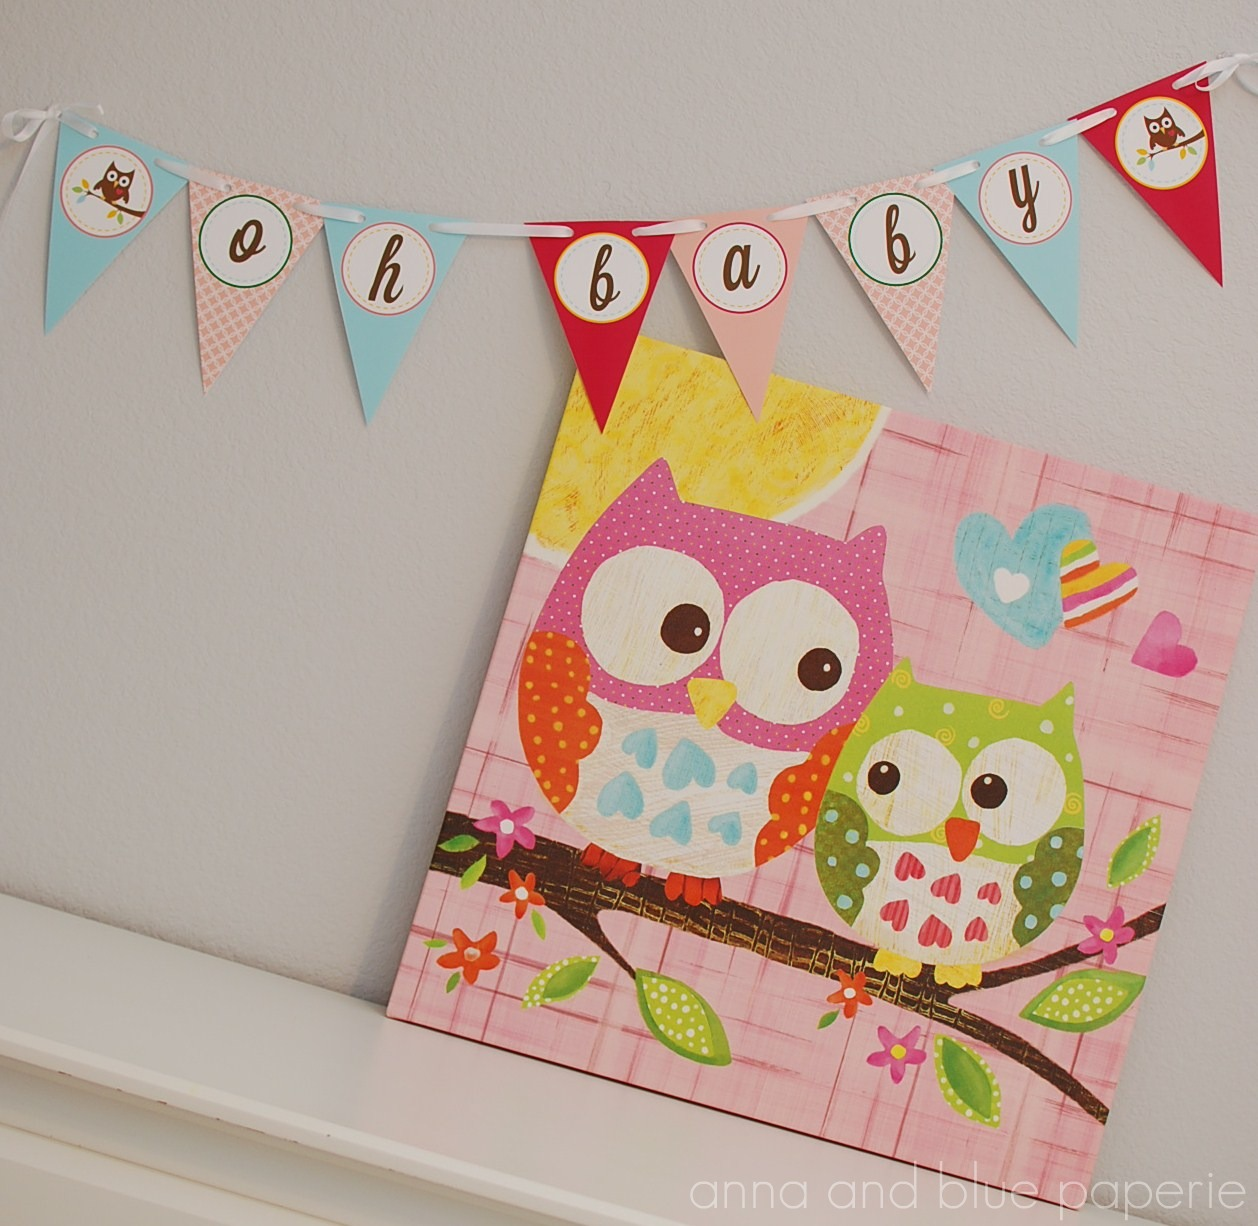 Owl Decor For Bathroom Anna And Blue Paperie New To The Shop Owl Love You